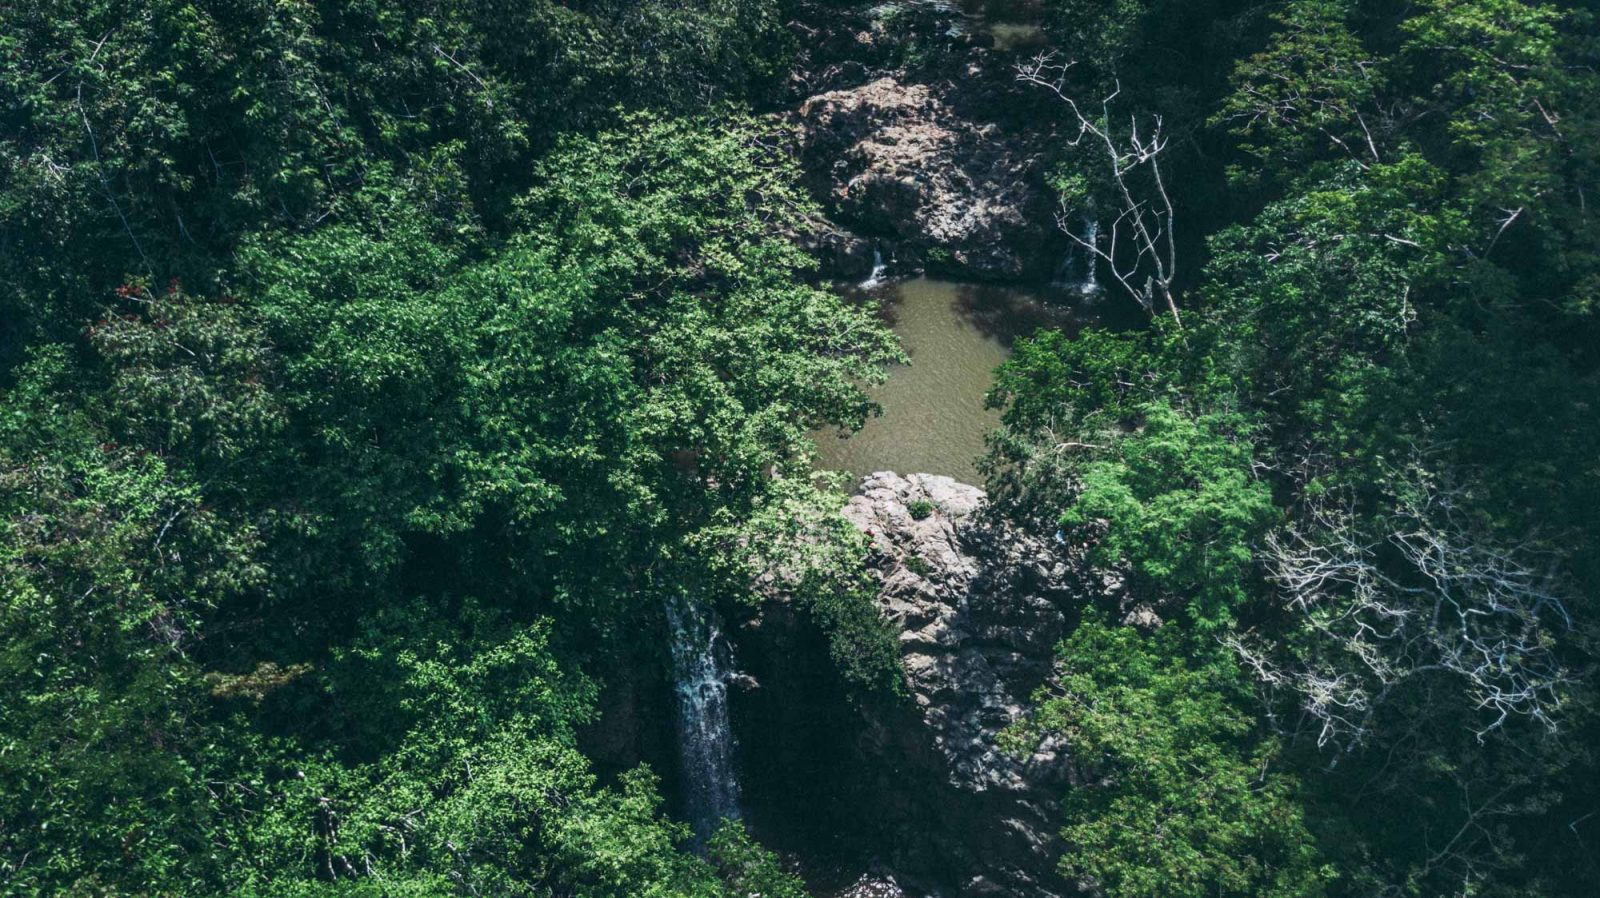 things to do in santa teresa costa rica: Can you spot the falls?